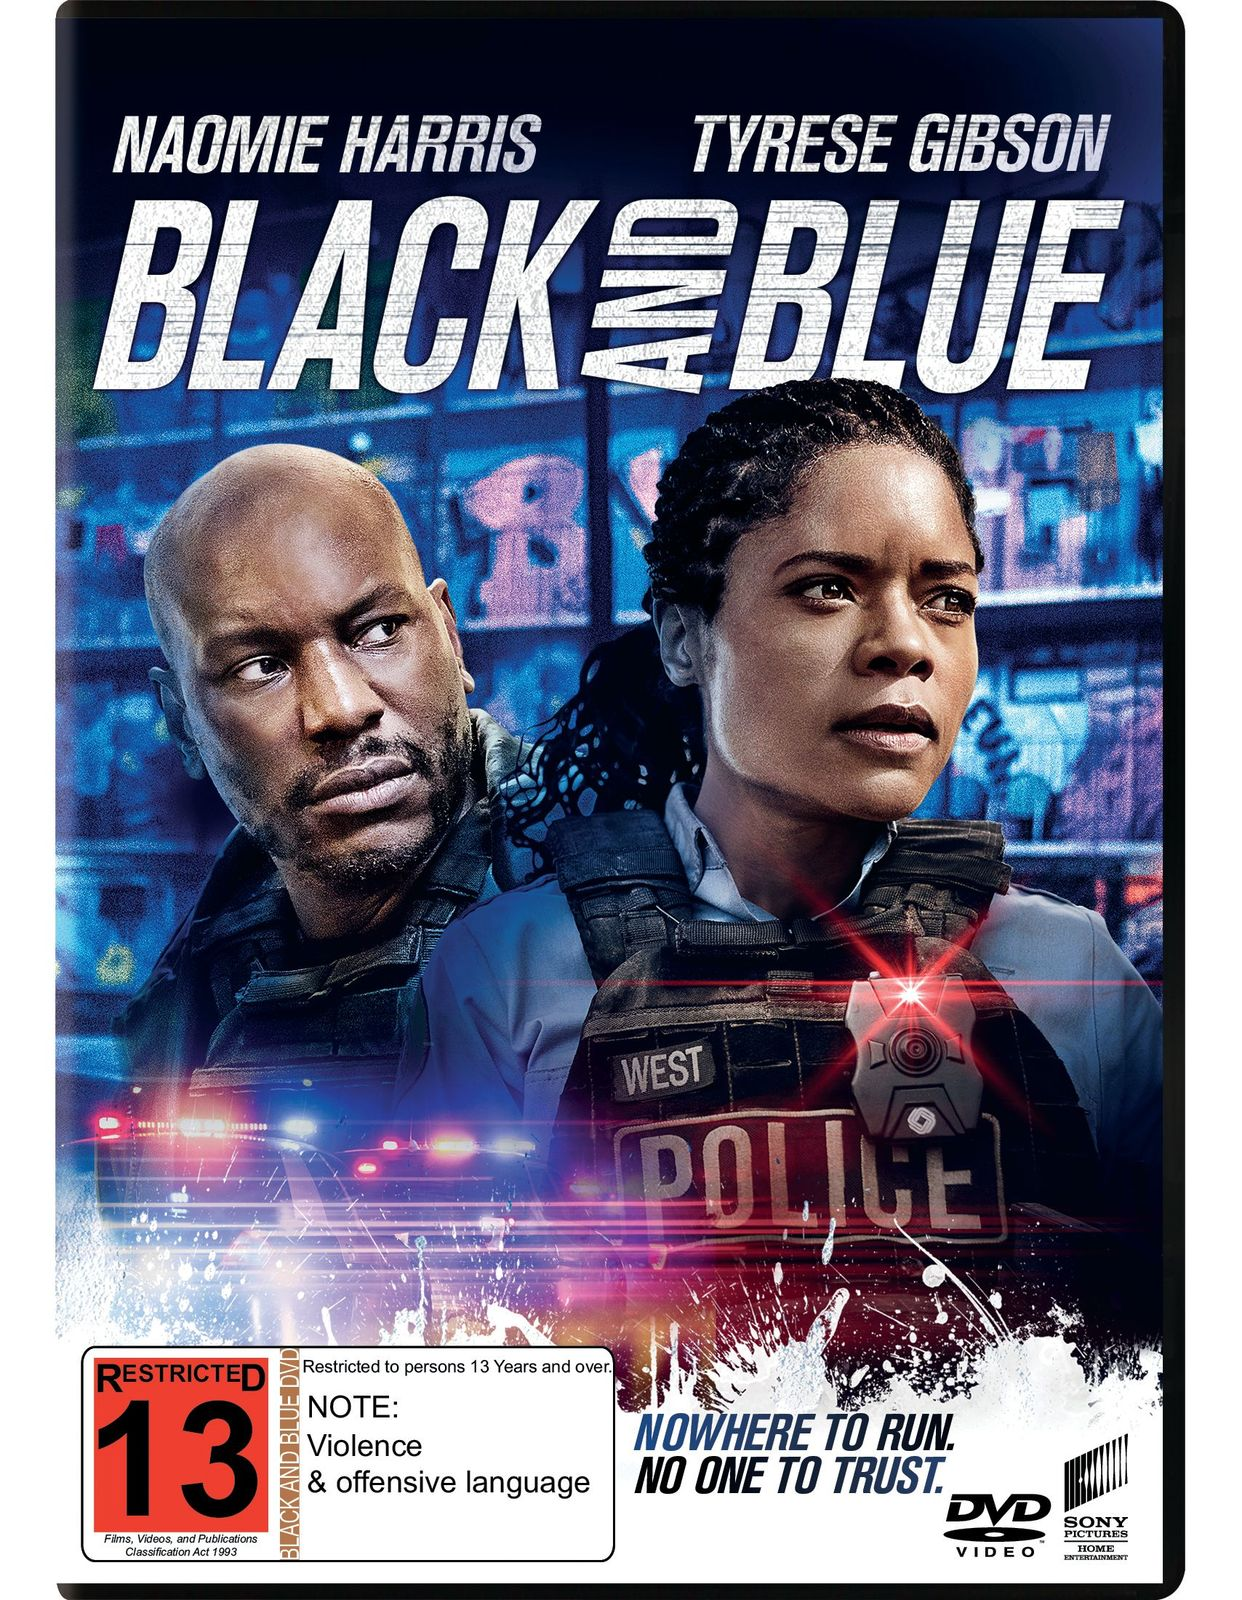 Black and Blue (2019) on DVD image